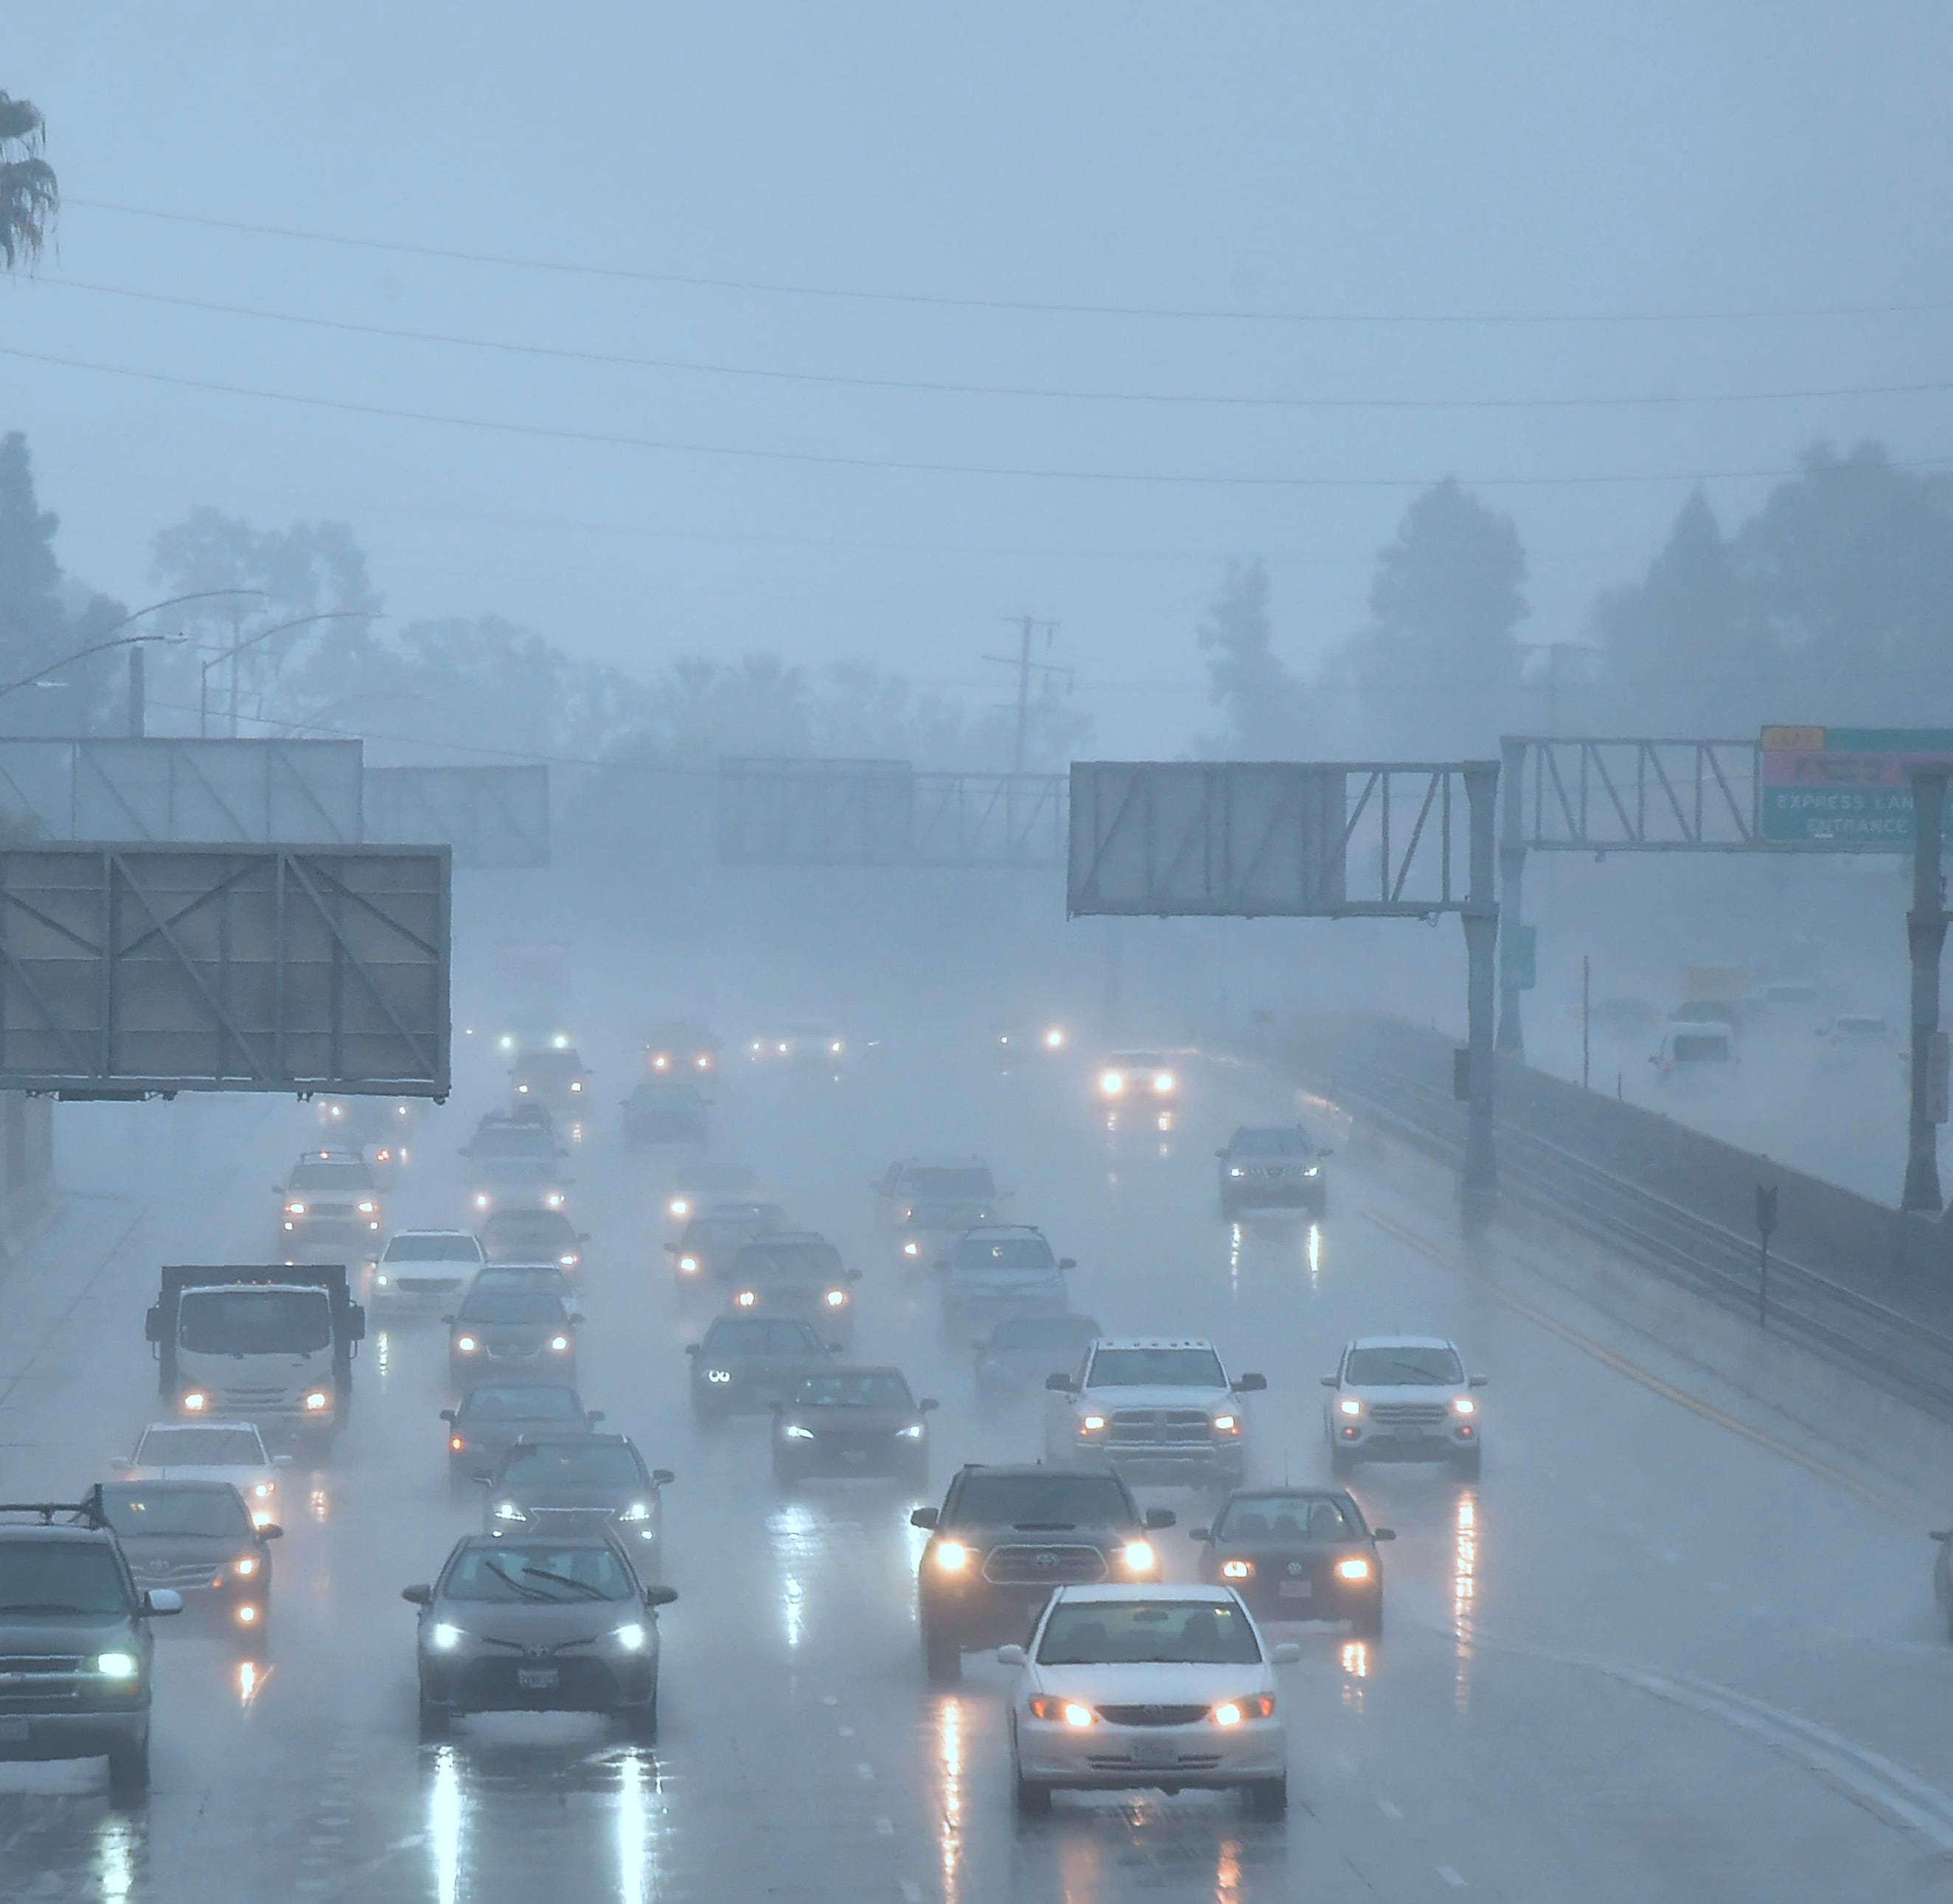 Commuters drive under heavy rainfall in Los Angeles, on March 21, 2018.